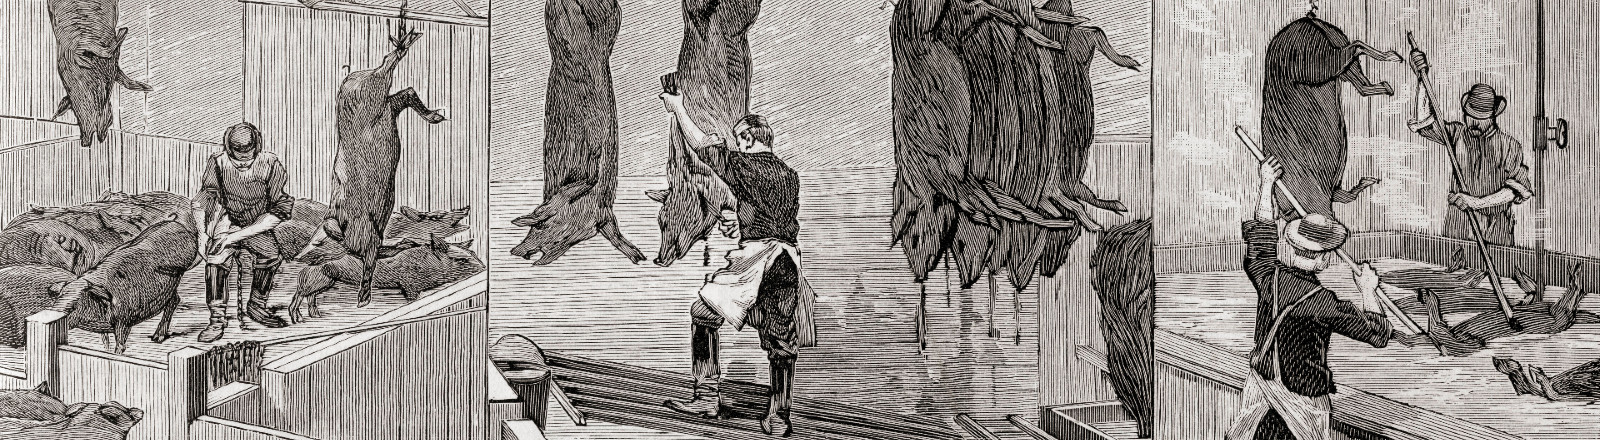 Three scenes from a slaughterhouse in Chicago in 1892; from La Ilustracion Espanola y Americana, published 1892